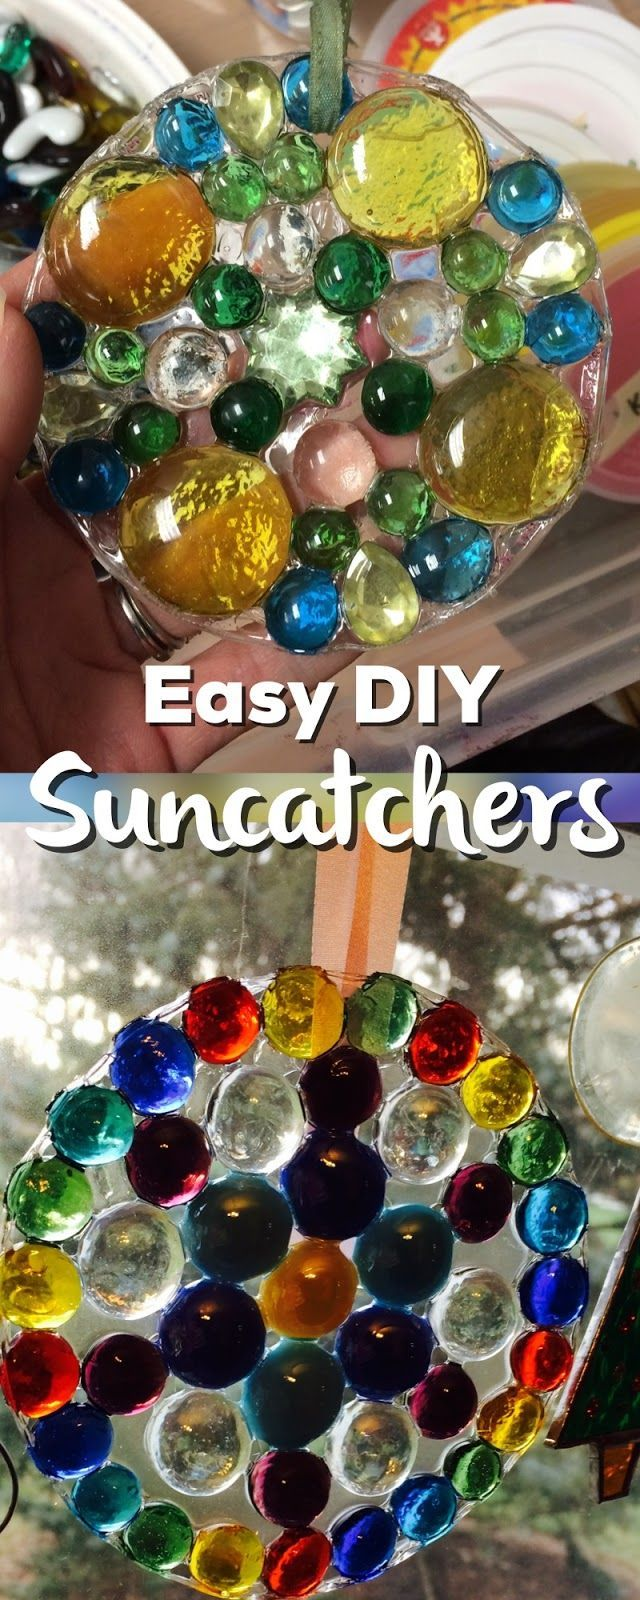 Easy Handmade DIY Suncatchers #craftsforkids